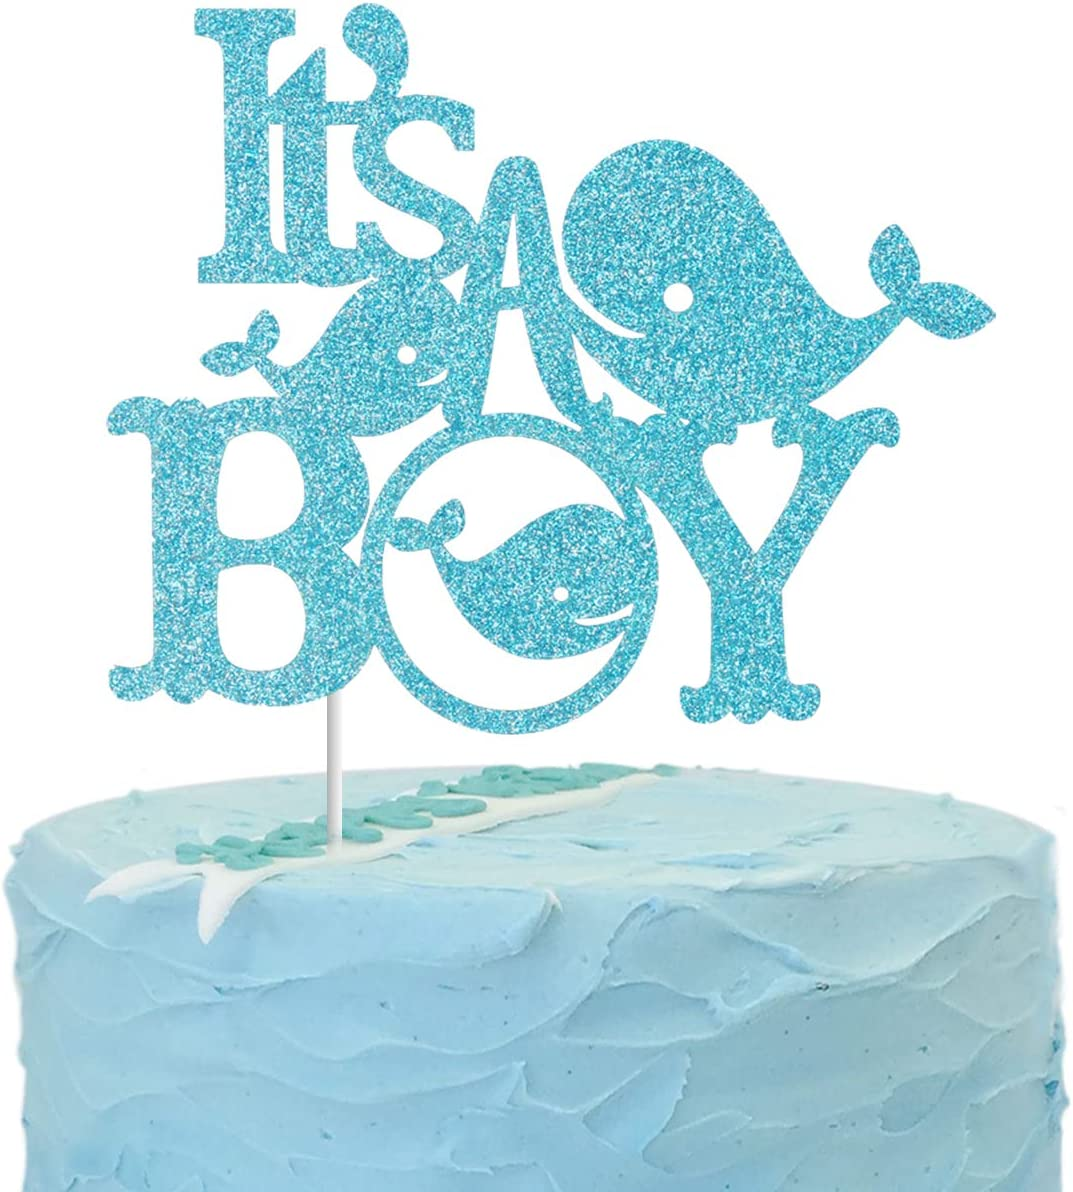 Reveal Party Cake Topper Gender Reveal Cake Cake Topper Baby Shower Glitter Cake Topper Gender Reveal Party Party Decorations